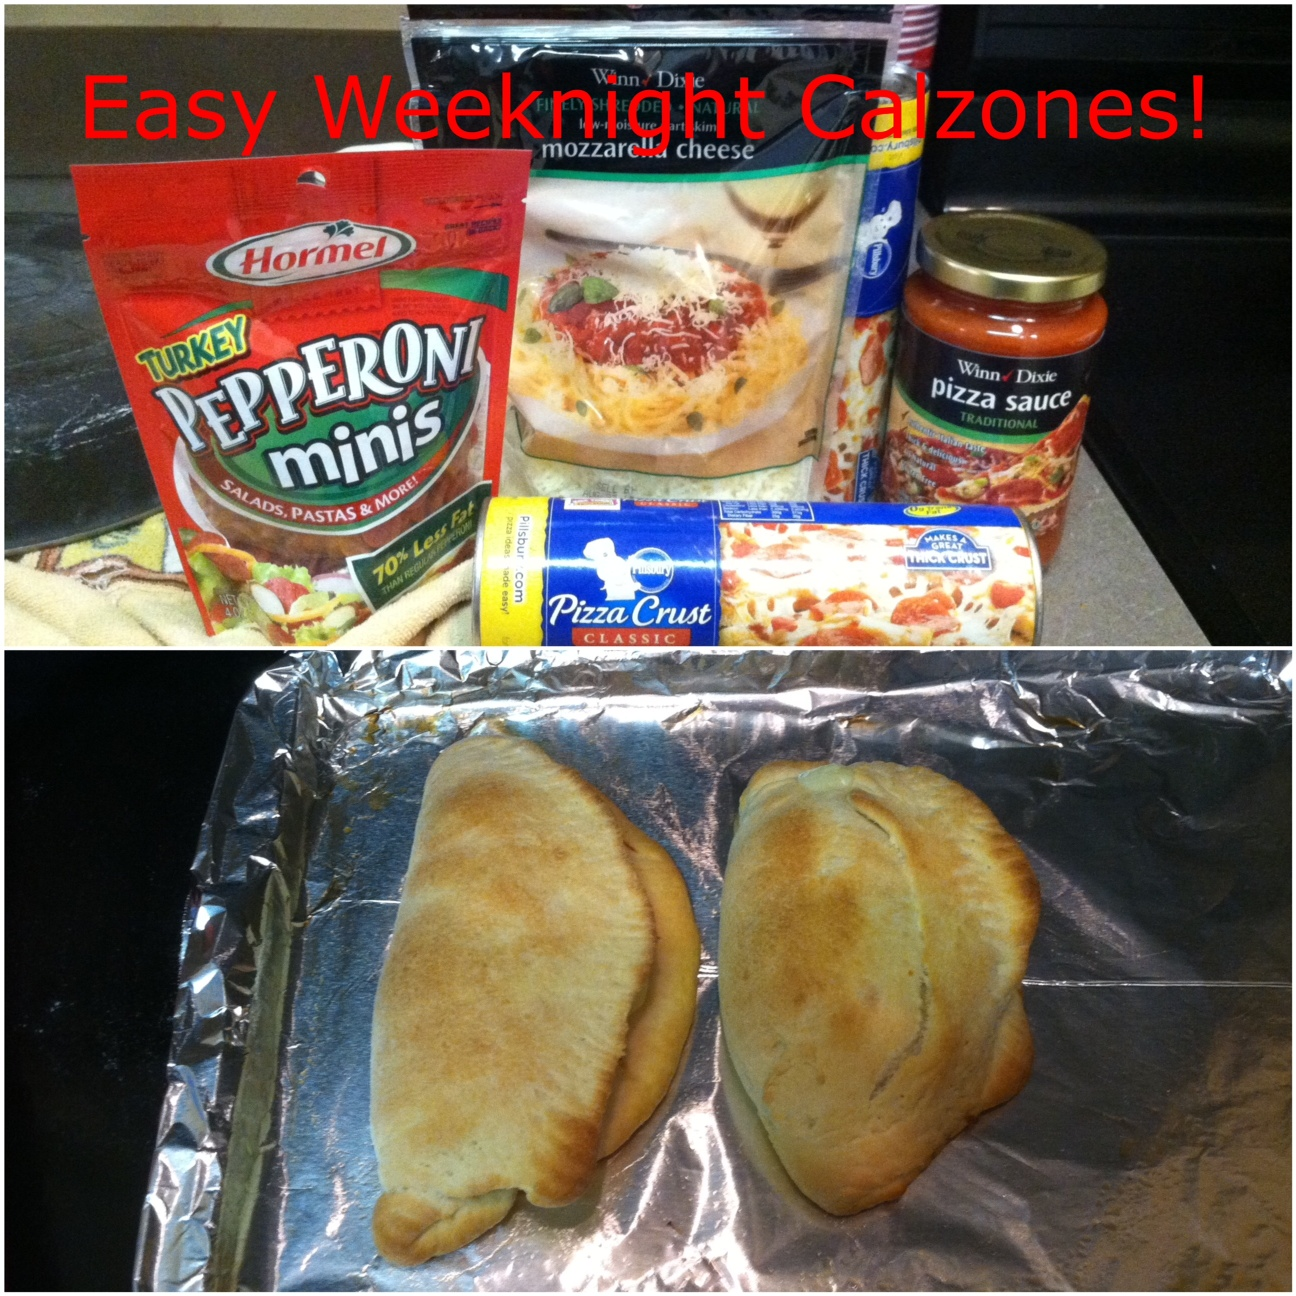 unBearablyGood: Easy Weeknight Calzones